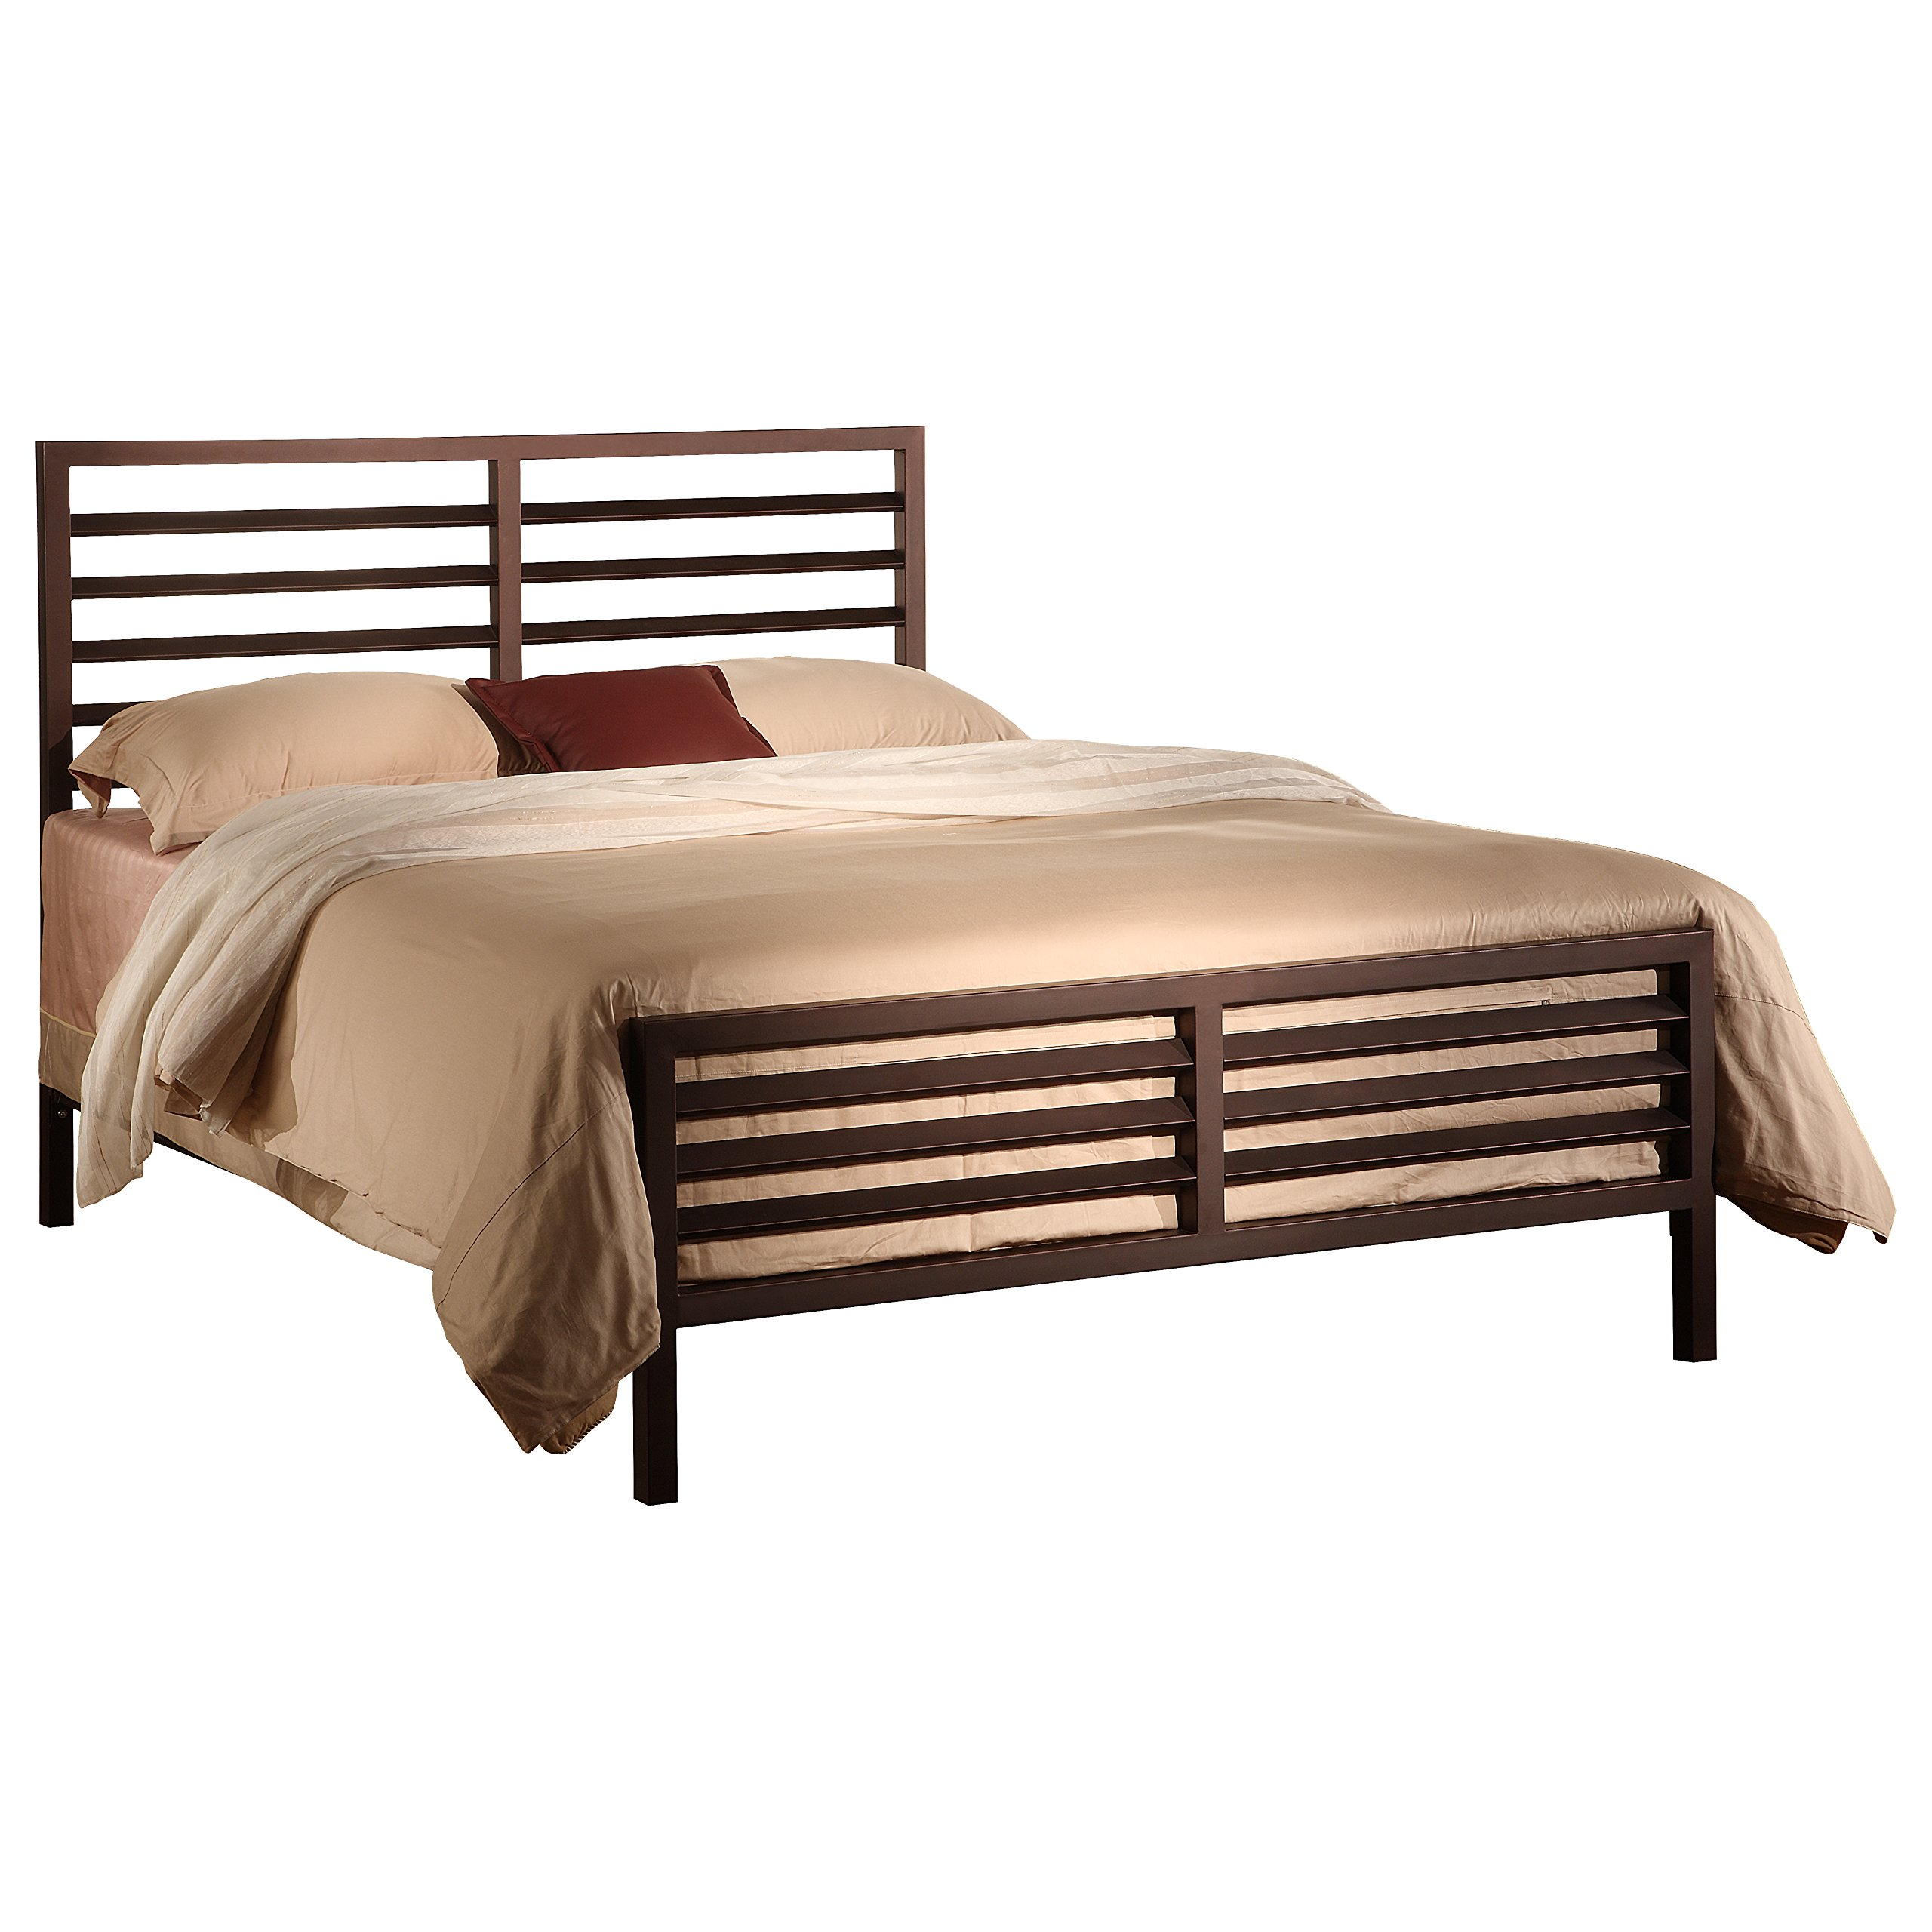 Pilaster Designs - Bronze Metal Annabelle Collection Bed Headboard Footboard Rails & Slats (Twin) by Pilaster Designs